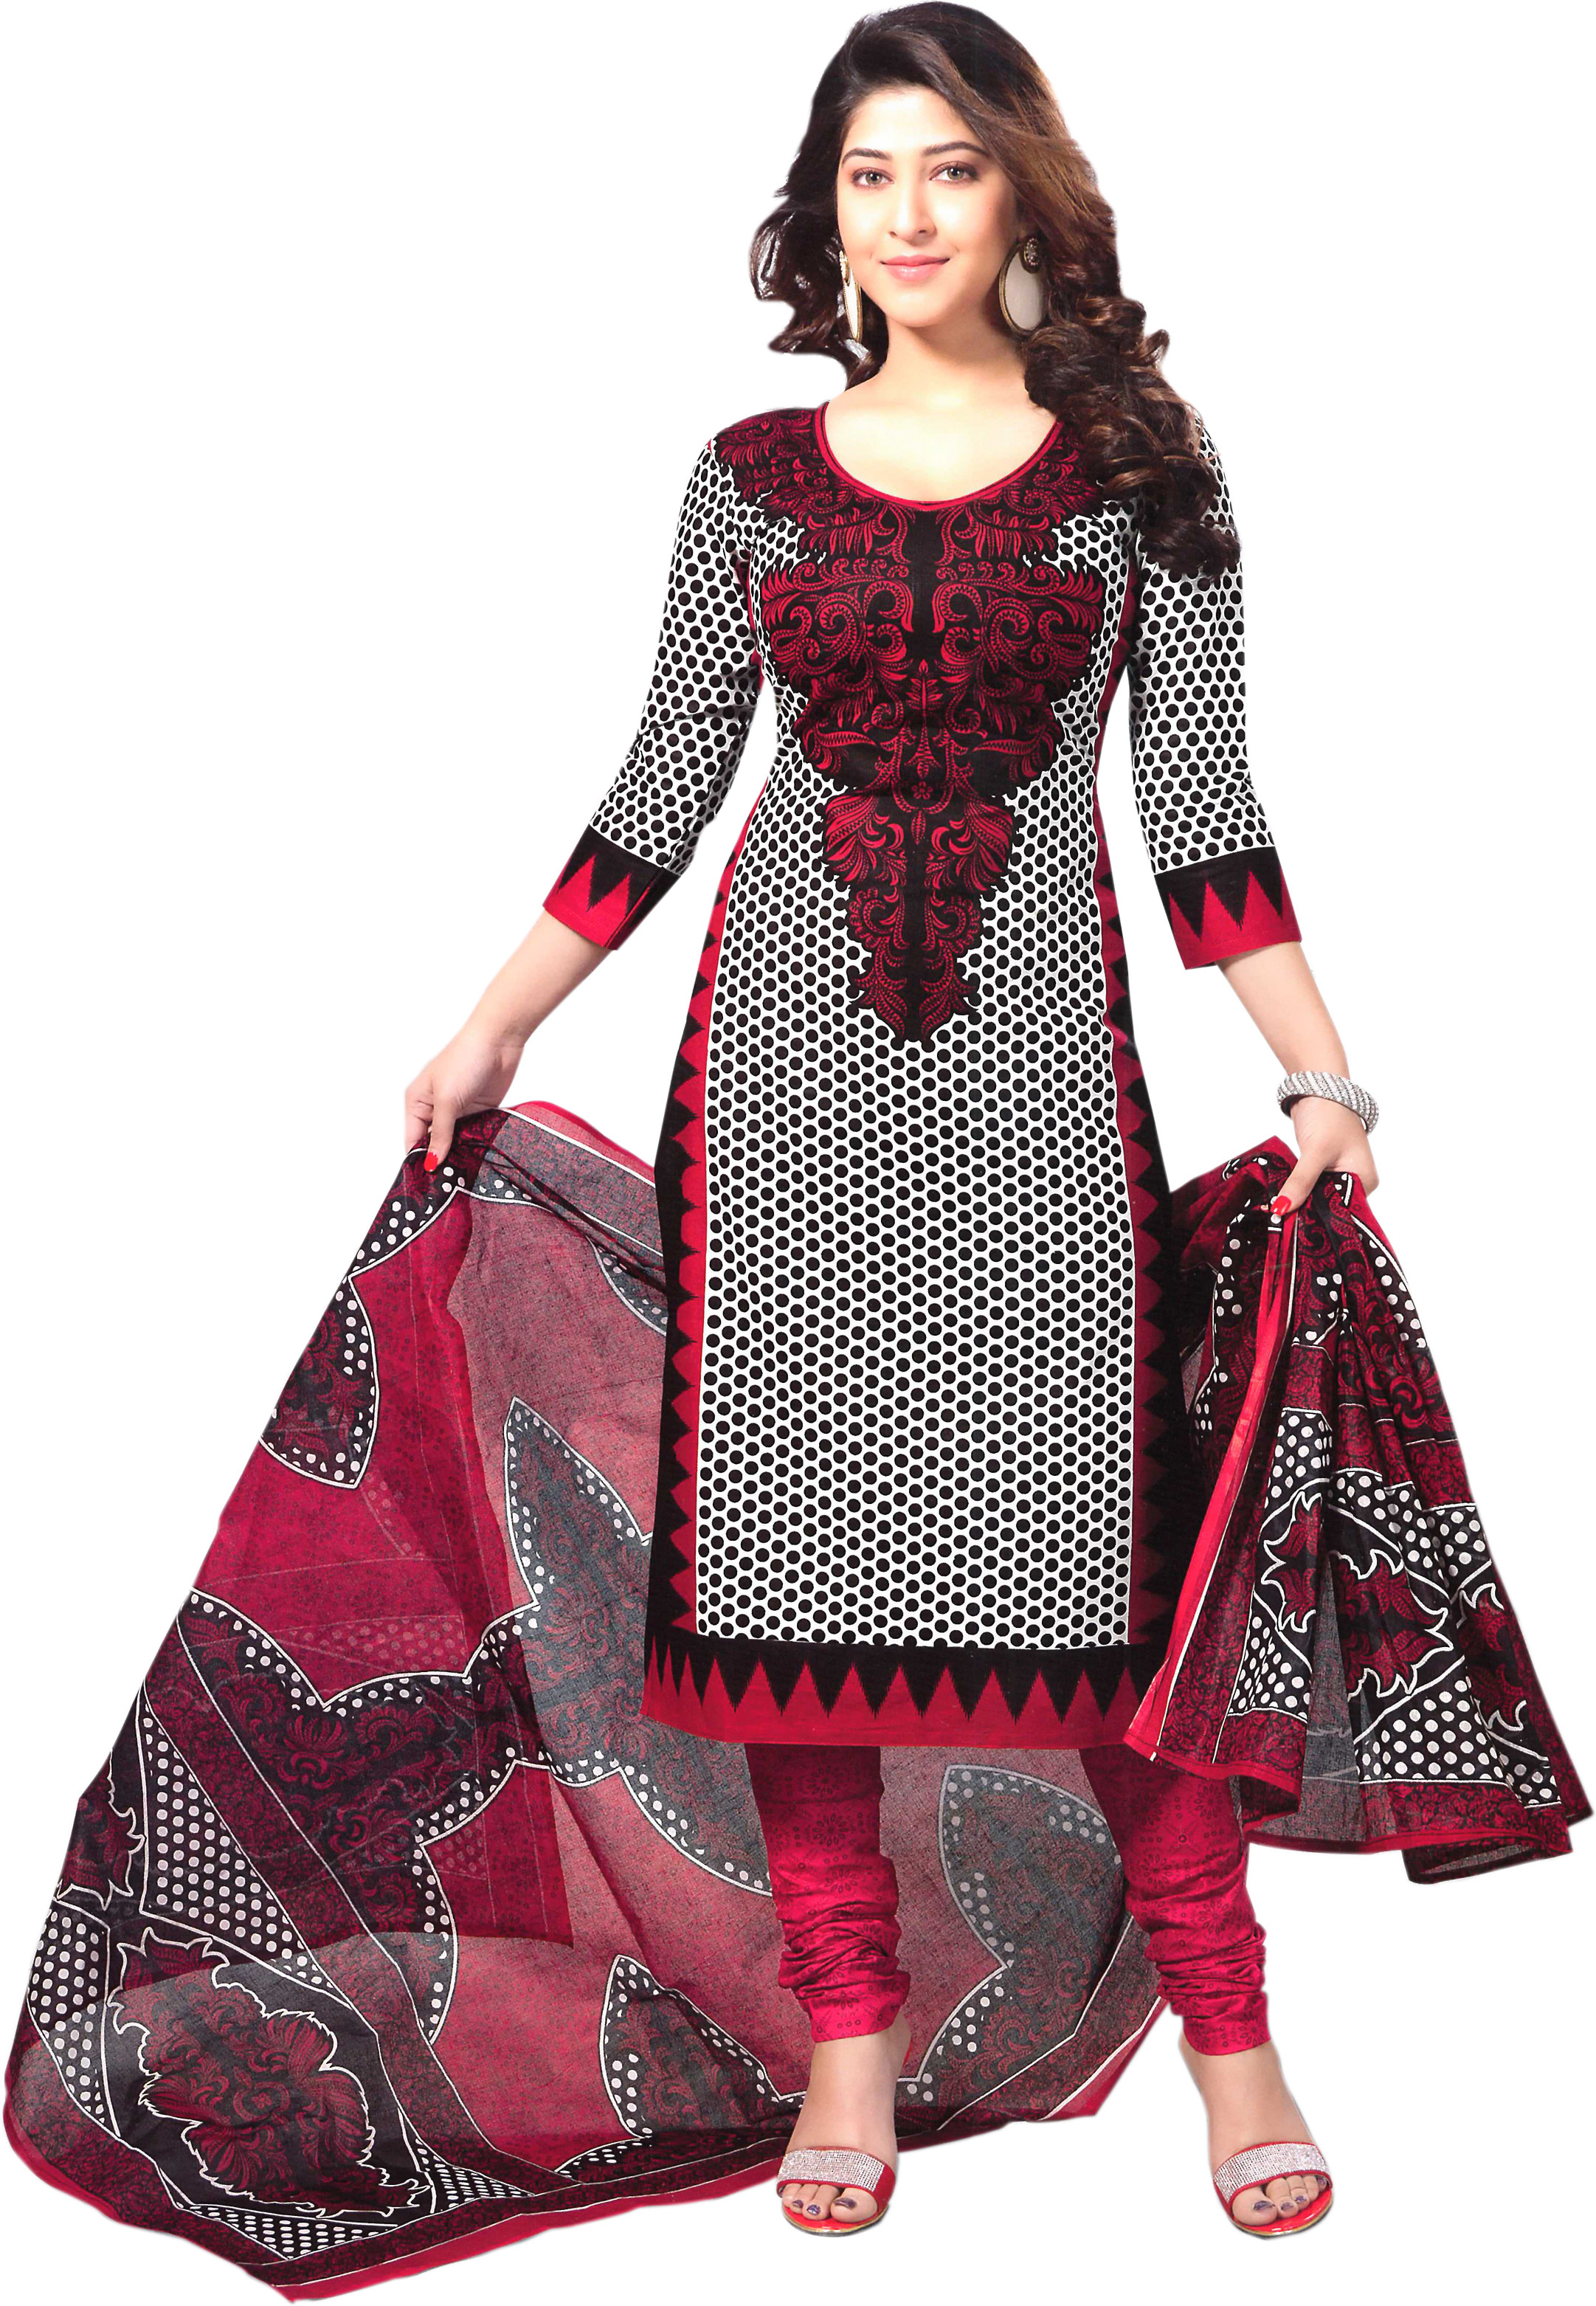 Online Clothes Shopping | Women Kurtas, Kurtis, Dresses, Tops, Jeans